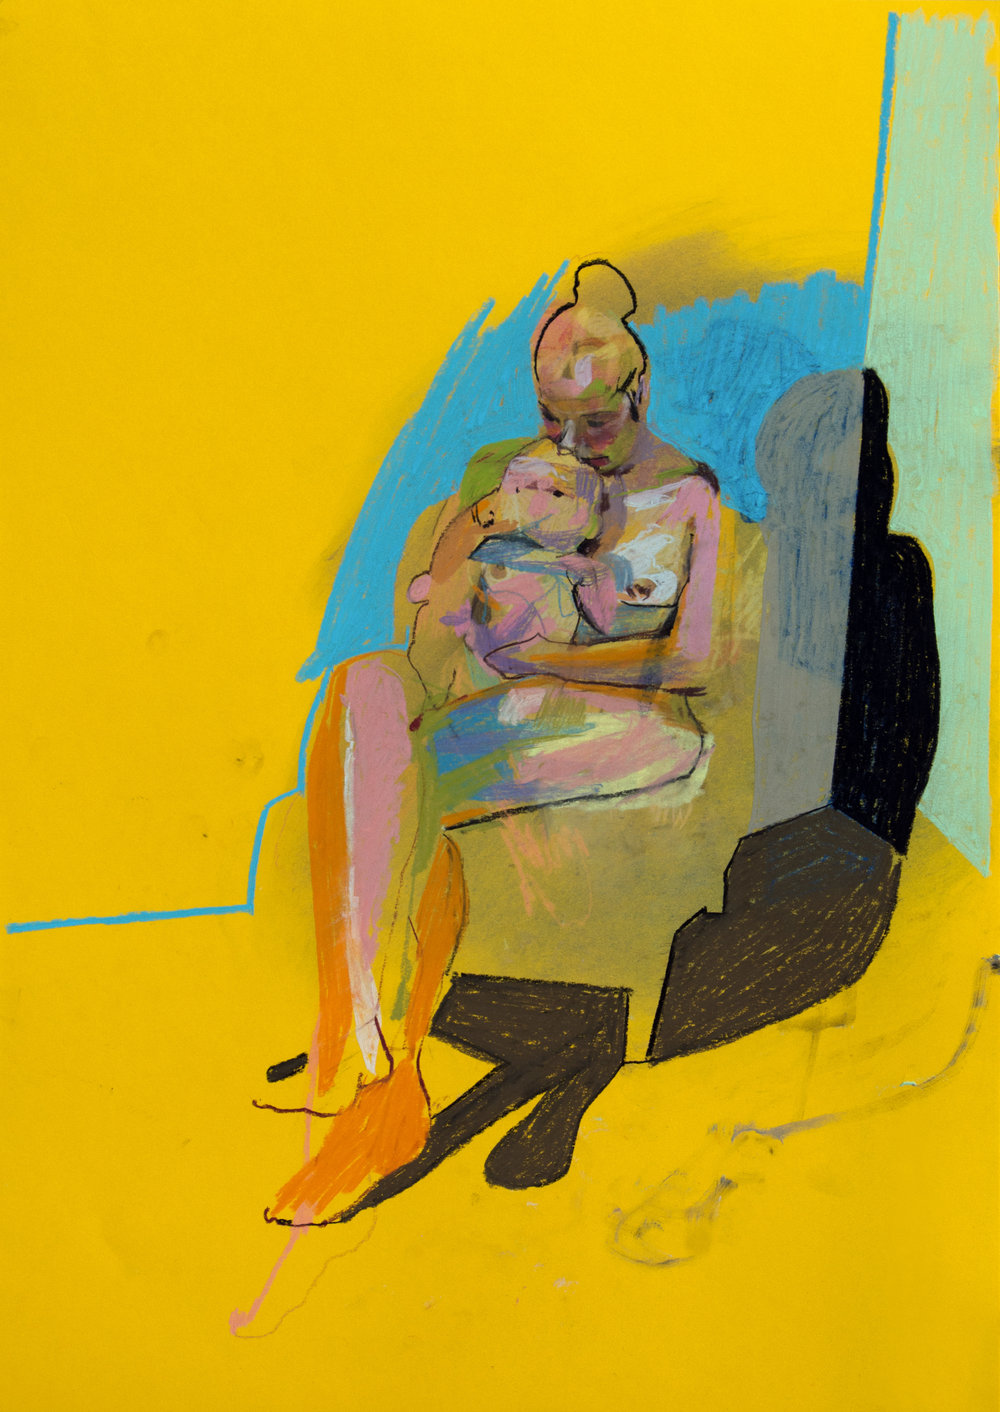 'Mother, model and child on yellow with blue wall', 2018, pastel, 59.3 x 42cm, SOLD